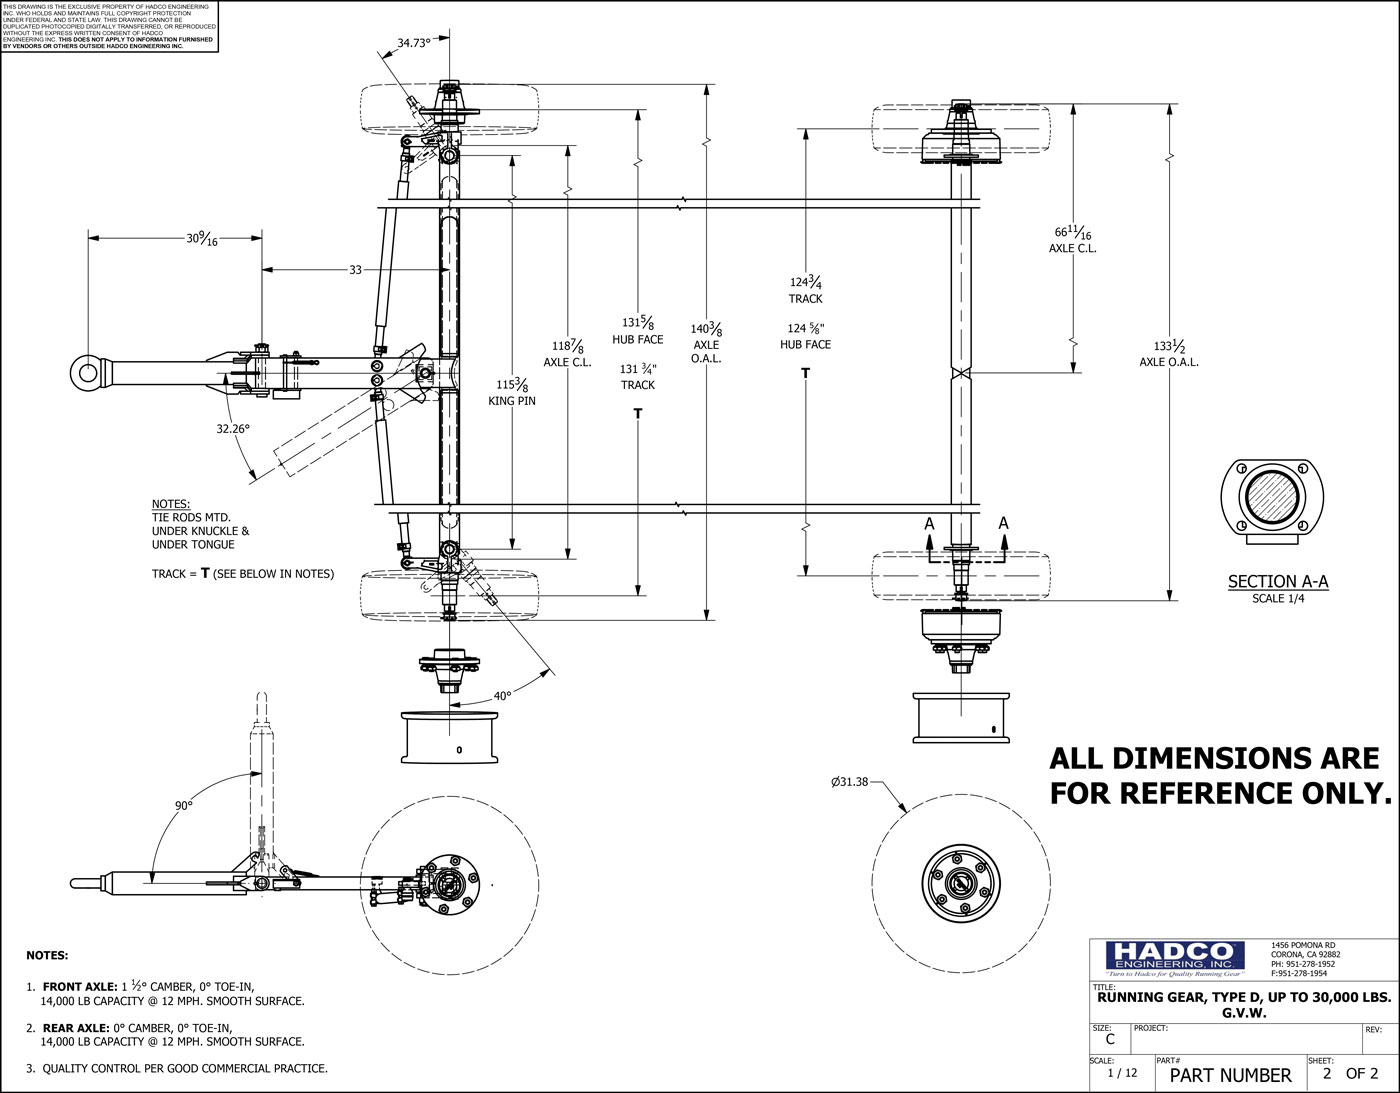 Tandem Wiring For Lighting - Auto Electrical Wiring Diagram on trailer parts diagram, 4 pin trailer diagram, utility trailer specifications, utility trailer parts catalog, utility trailer frame, utility trailer chassis, utility trailer seats, utility trailer suspension, utility trailer schematics, truck trailer diagram, utility trailer steering diagram, utility trailer repair, utility trailer accessories, utility trailer plug, 7 pronge trailer connector diagram, utility trailer maintenance, utility trailer lights, utility trailer motor, electric trailer jack switch diagram, utility trailer assembly,